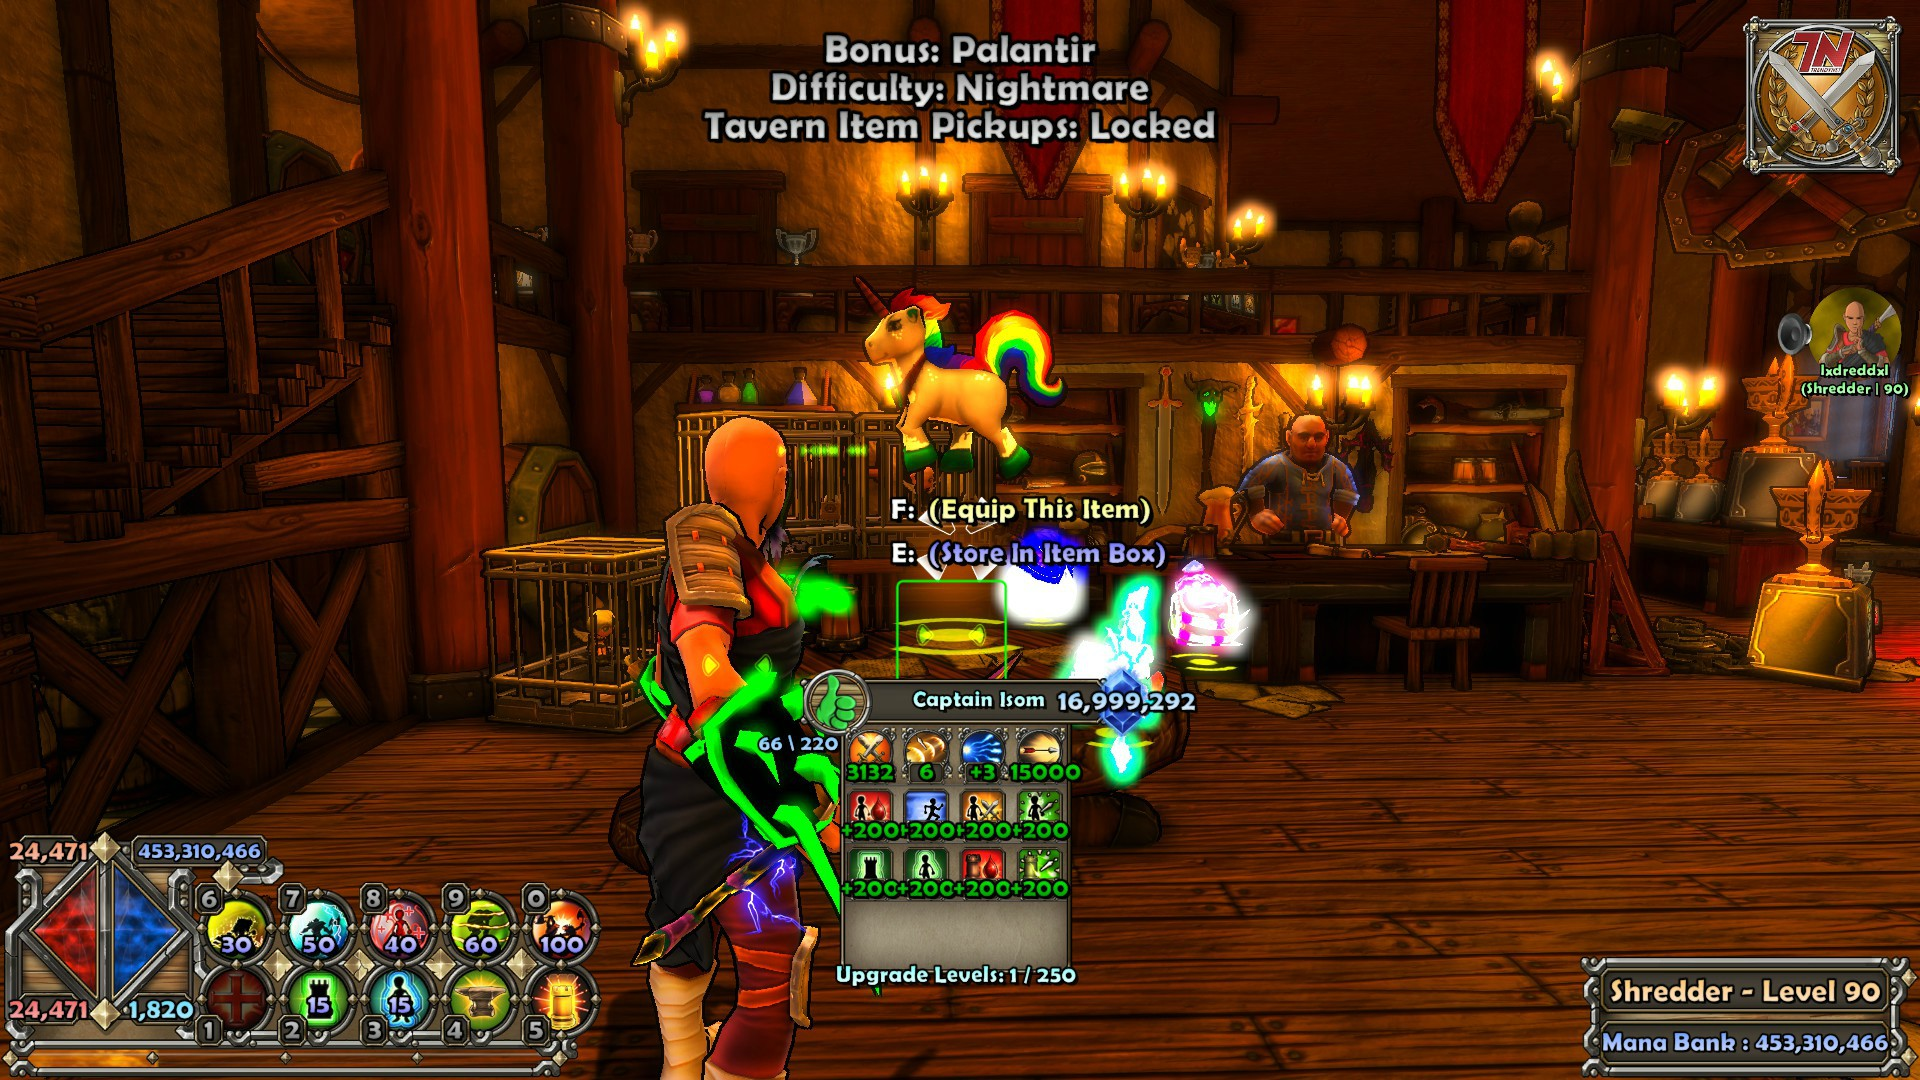 Captain isom dungeon defenders wiki fandom powered by wikia - Dungeon defenders 2 console ...